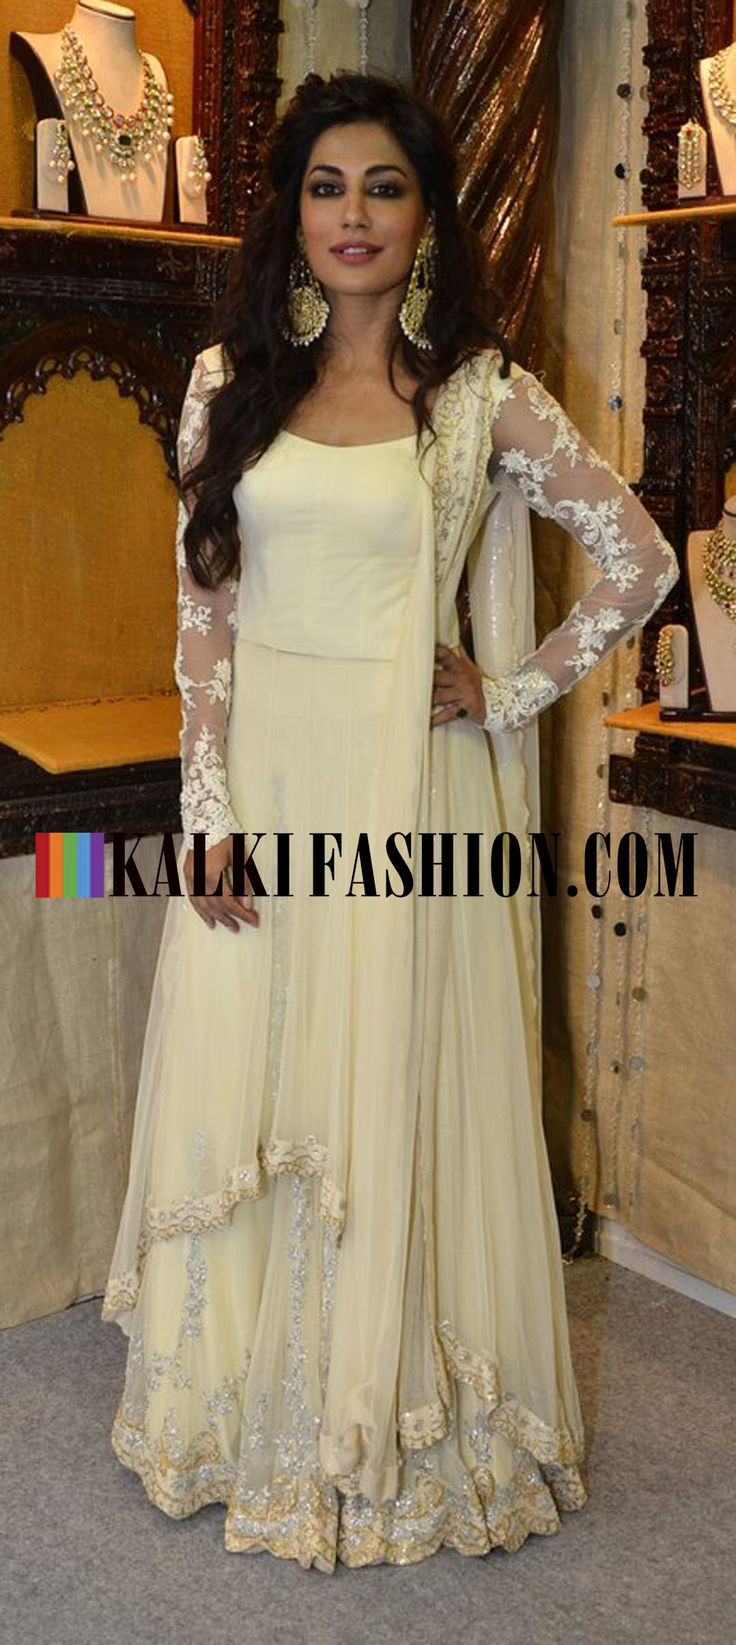 Chitrangda Singh inaugurated the Glamour Jewellery Store wearing a cream Neeta Lulla anarkali suit. http://www.kalkifashion.com/